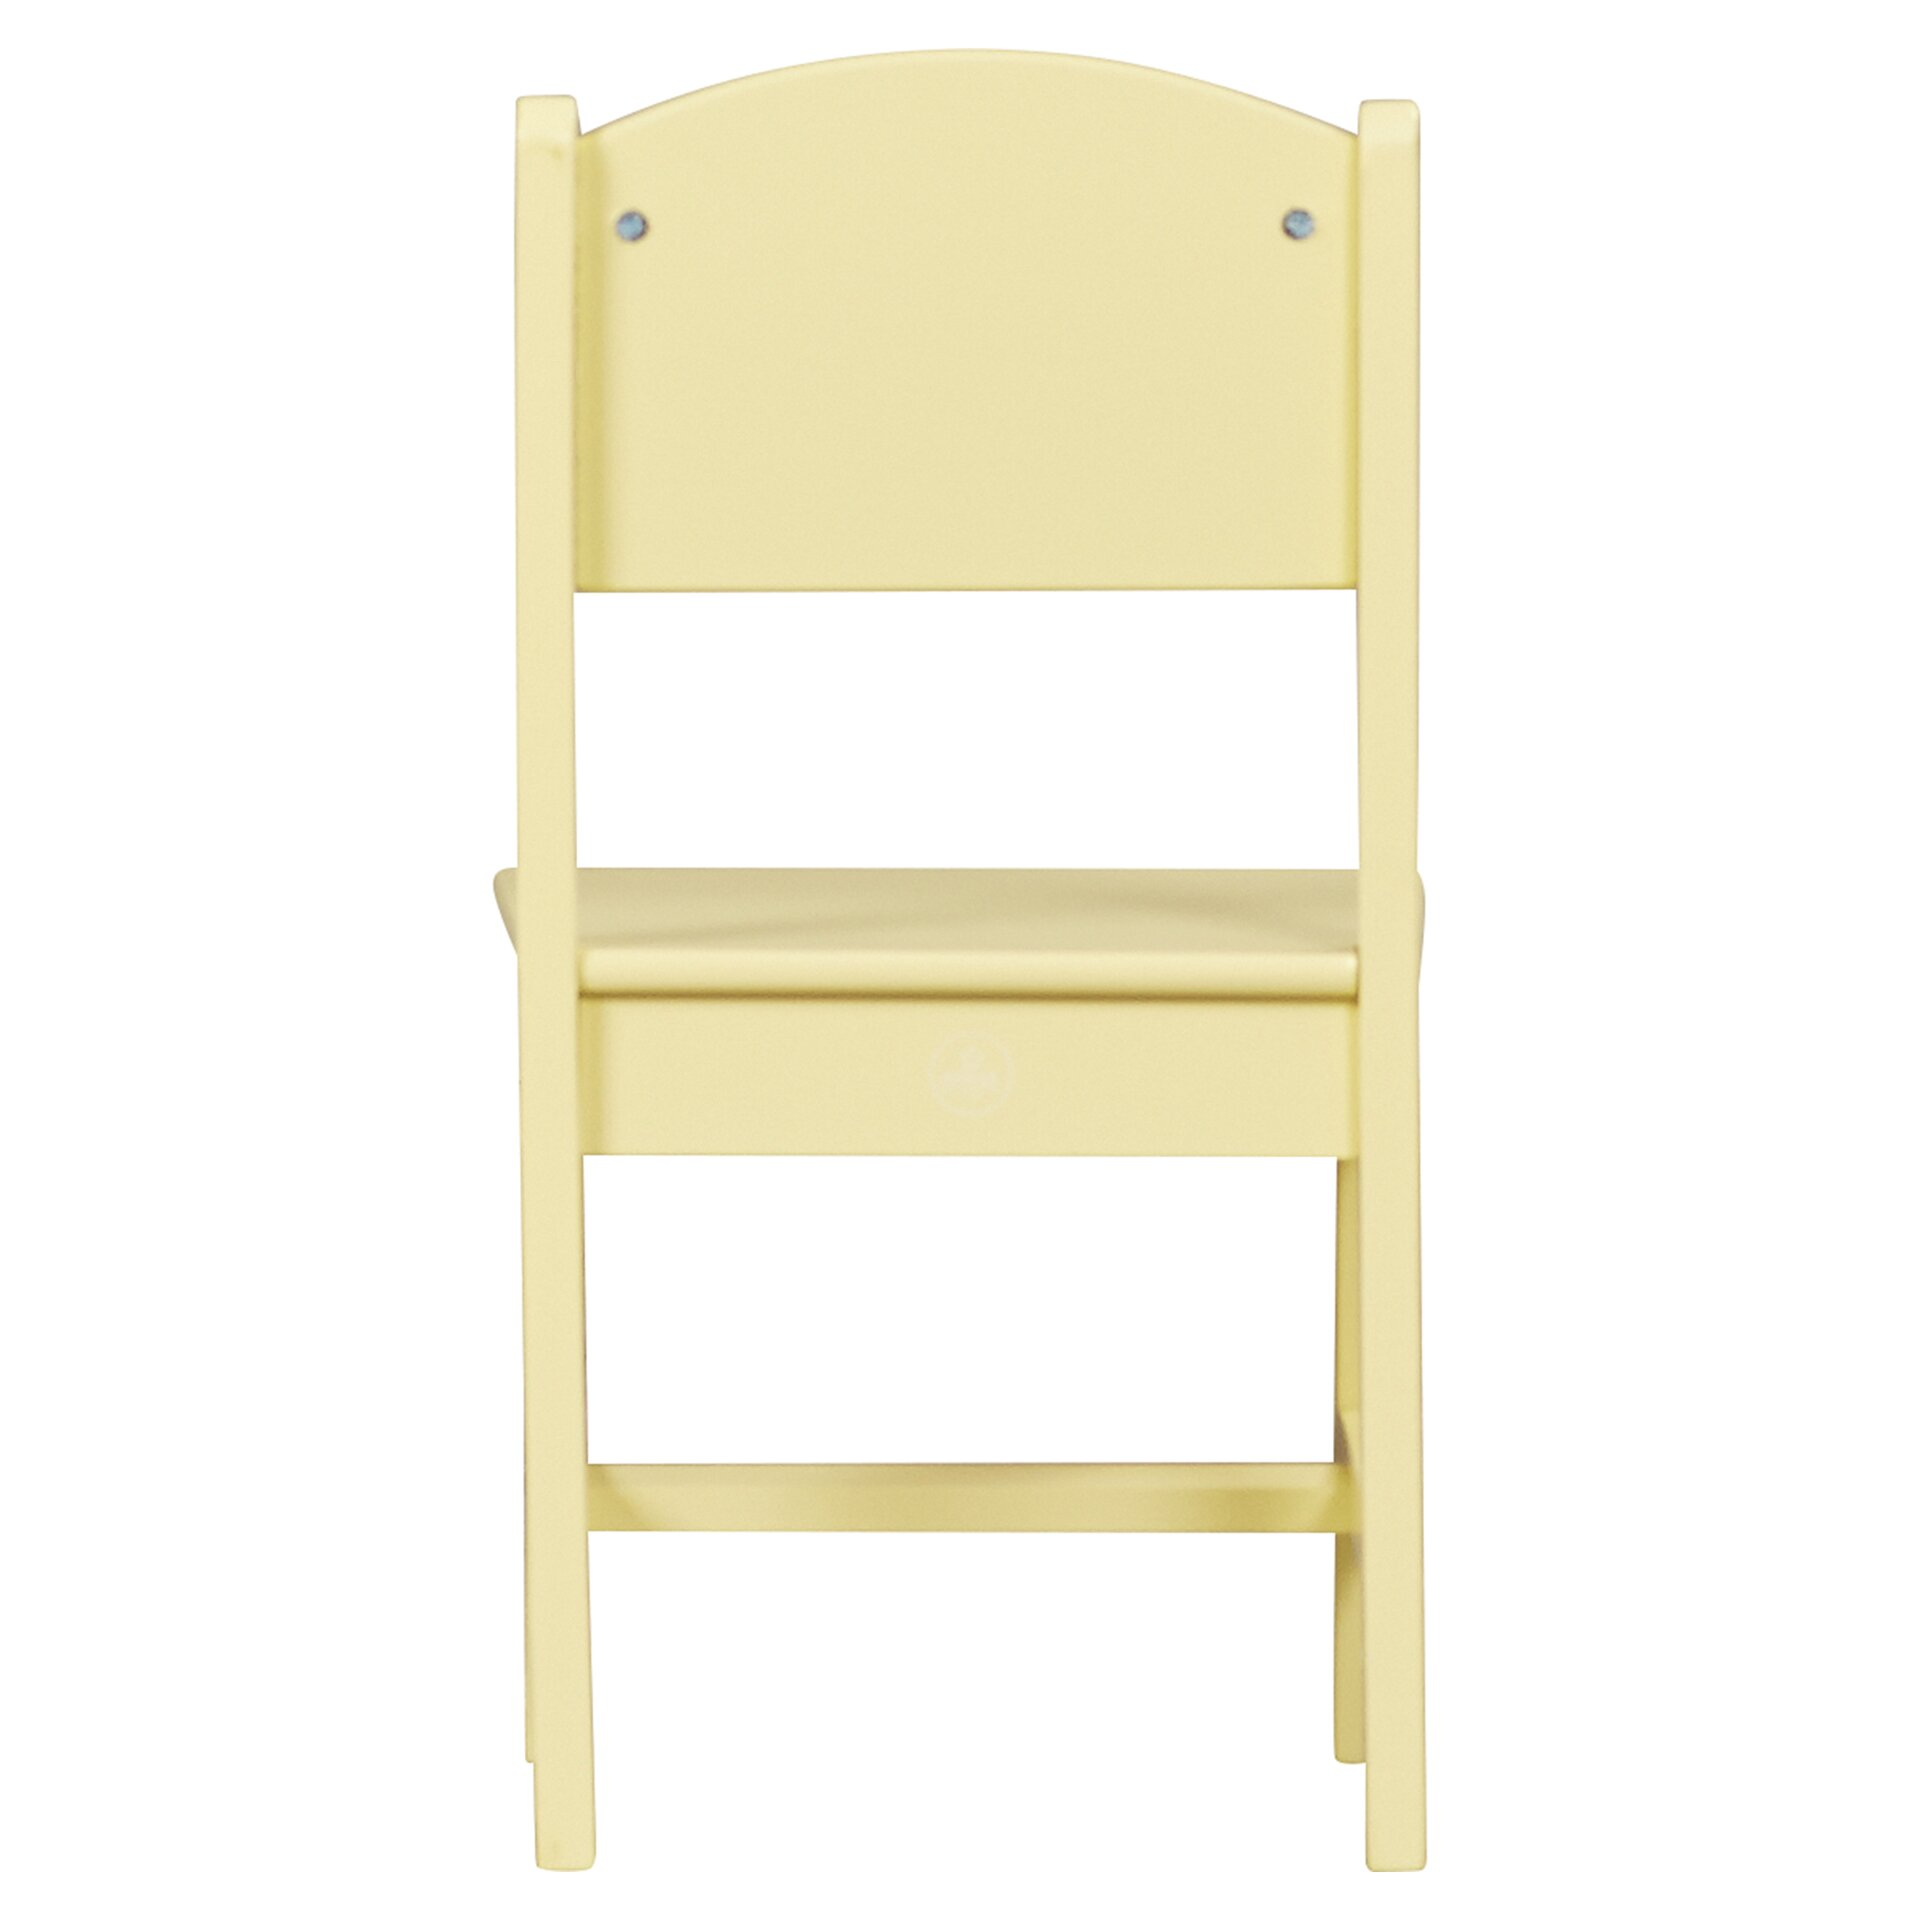 Best toddler table and chairs - Kidkraft Nantucket Kids 5 Piece Table Amp Chair Set Best Toddler Table And Chairs